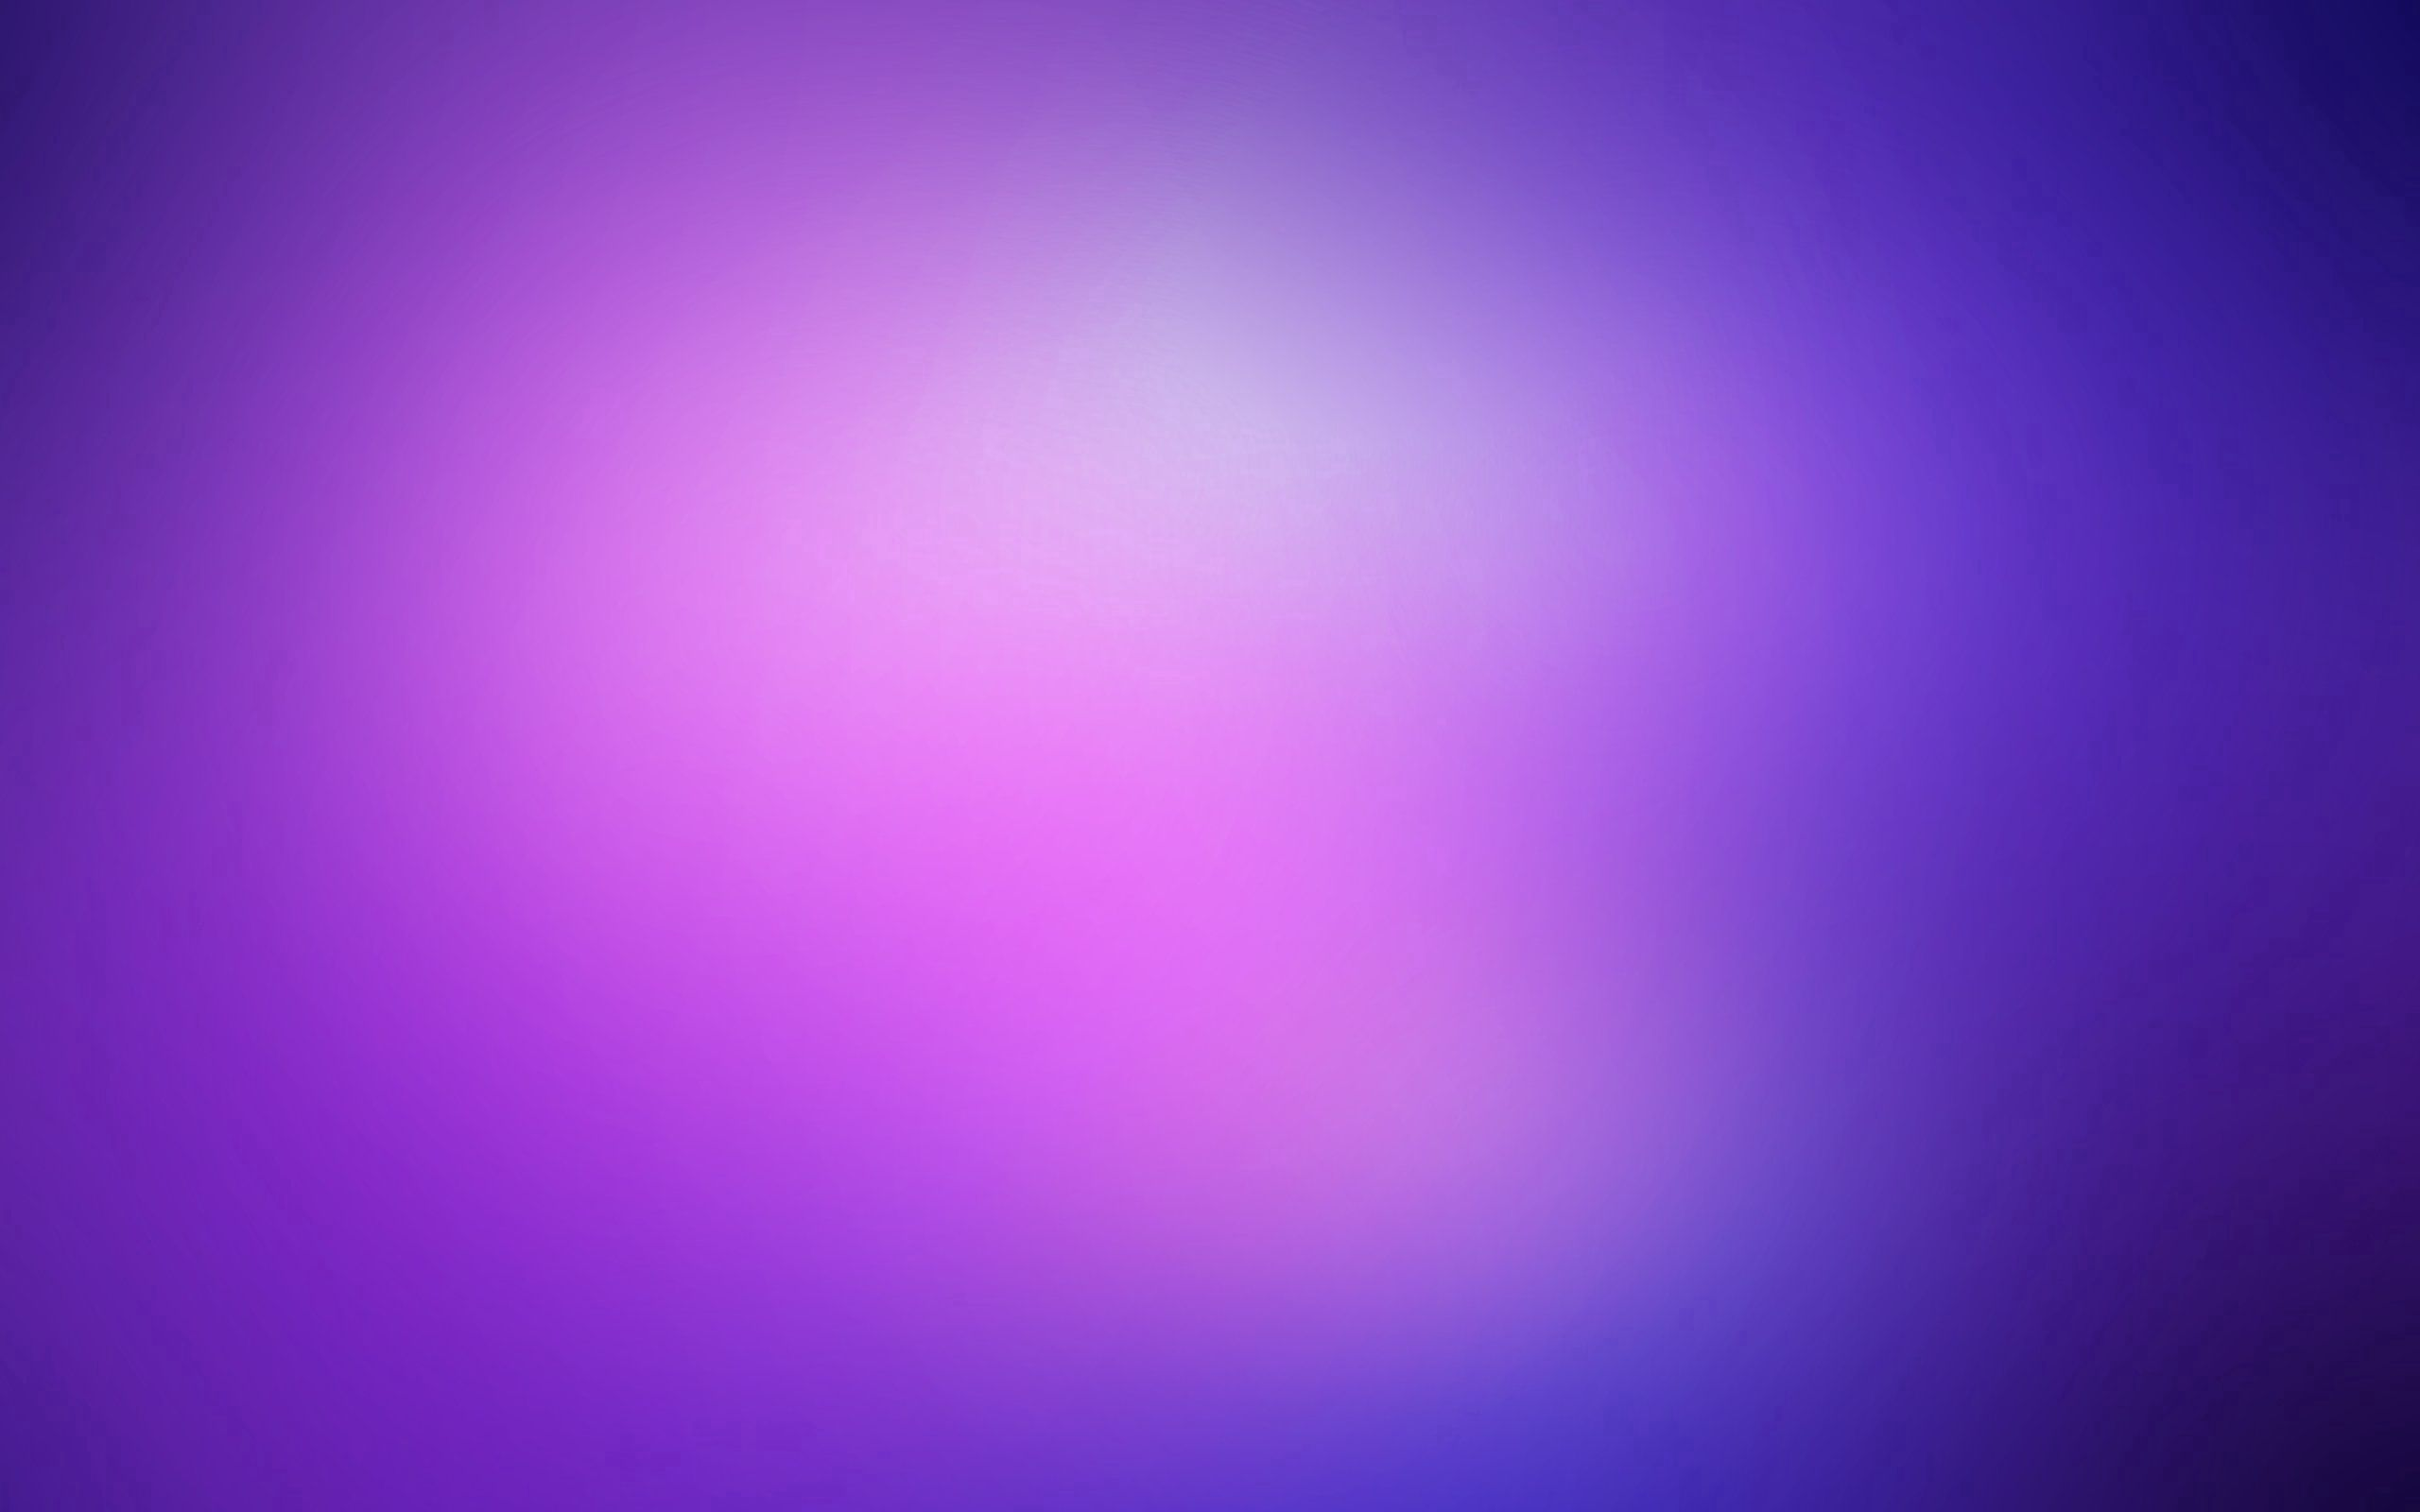 86830 download wallpaper Abstract, Background, Solid, Glare, Shine, Light, Color screensavers and pictures for free